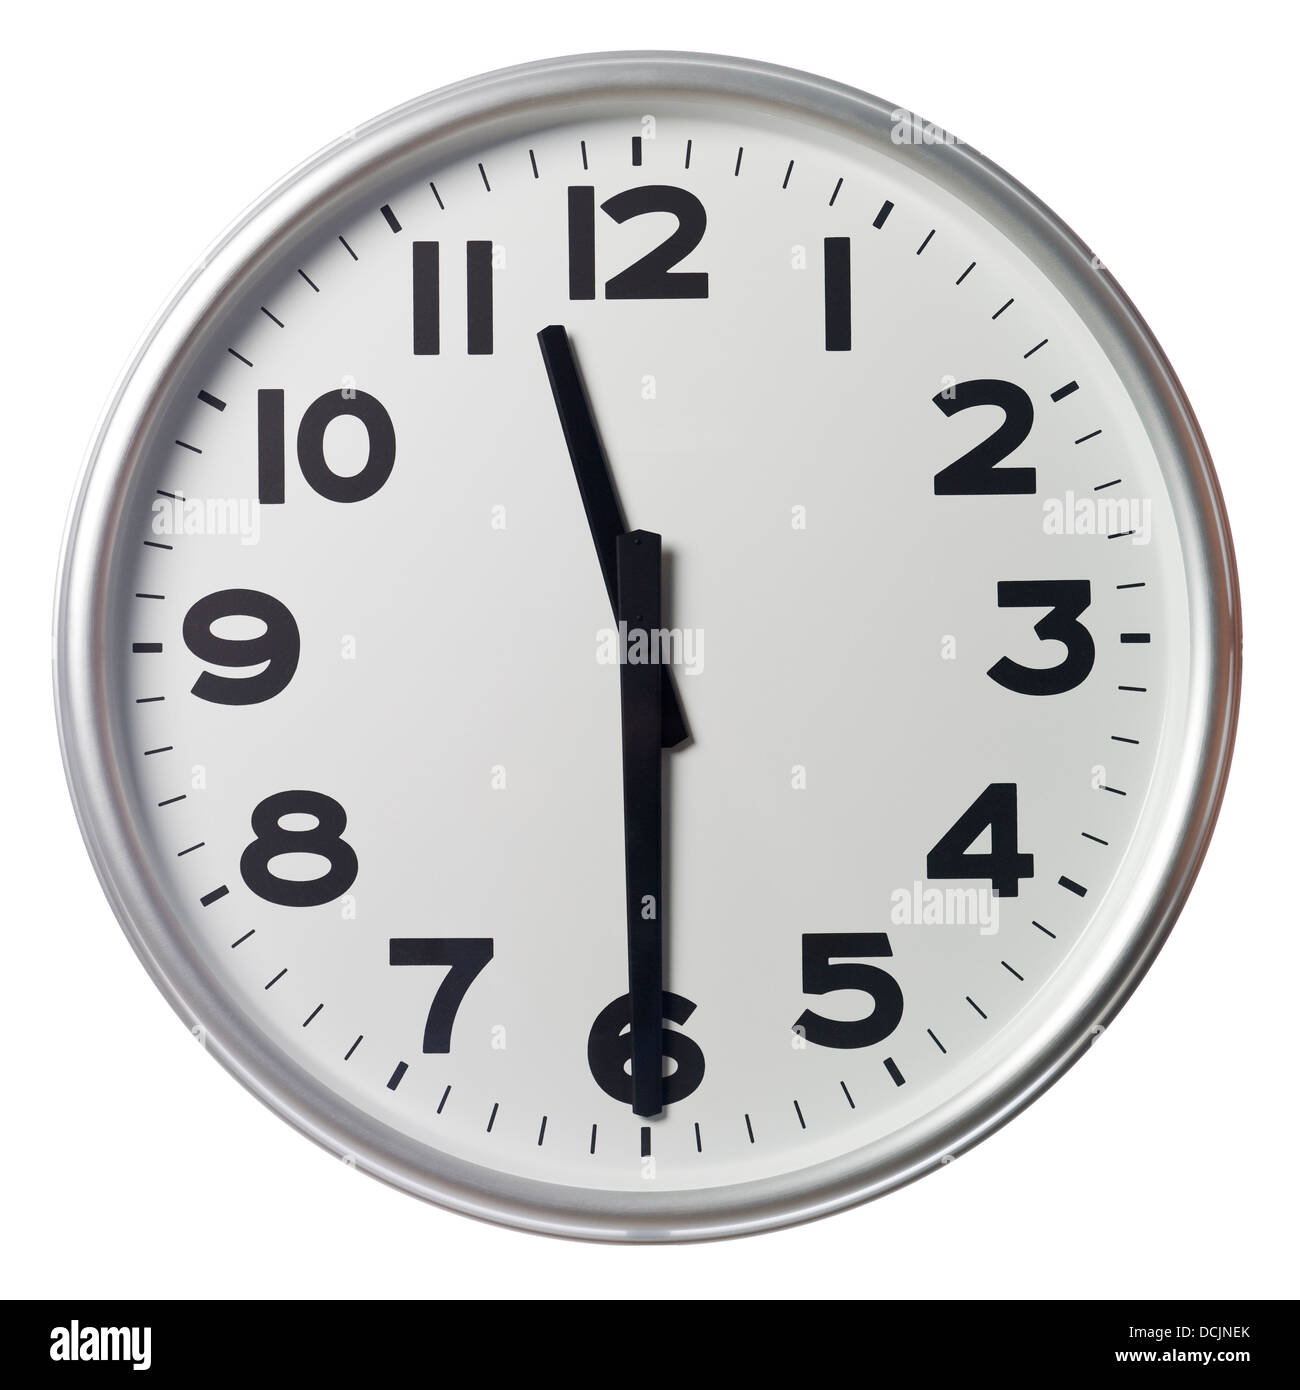 Half Past Eleven Stock Photo Royalty Free Image